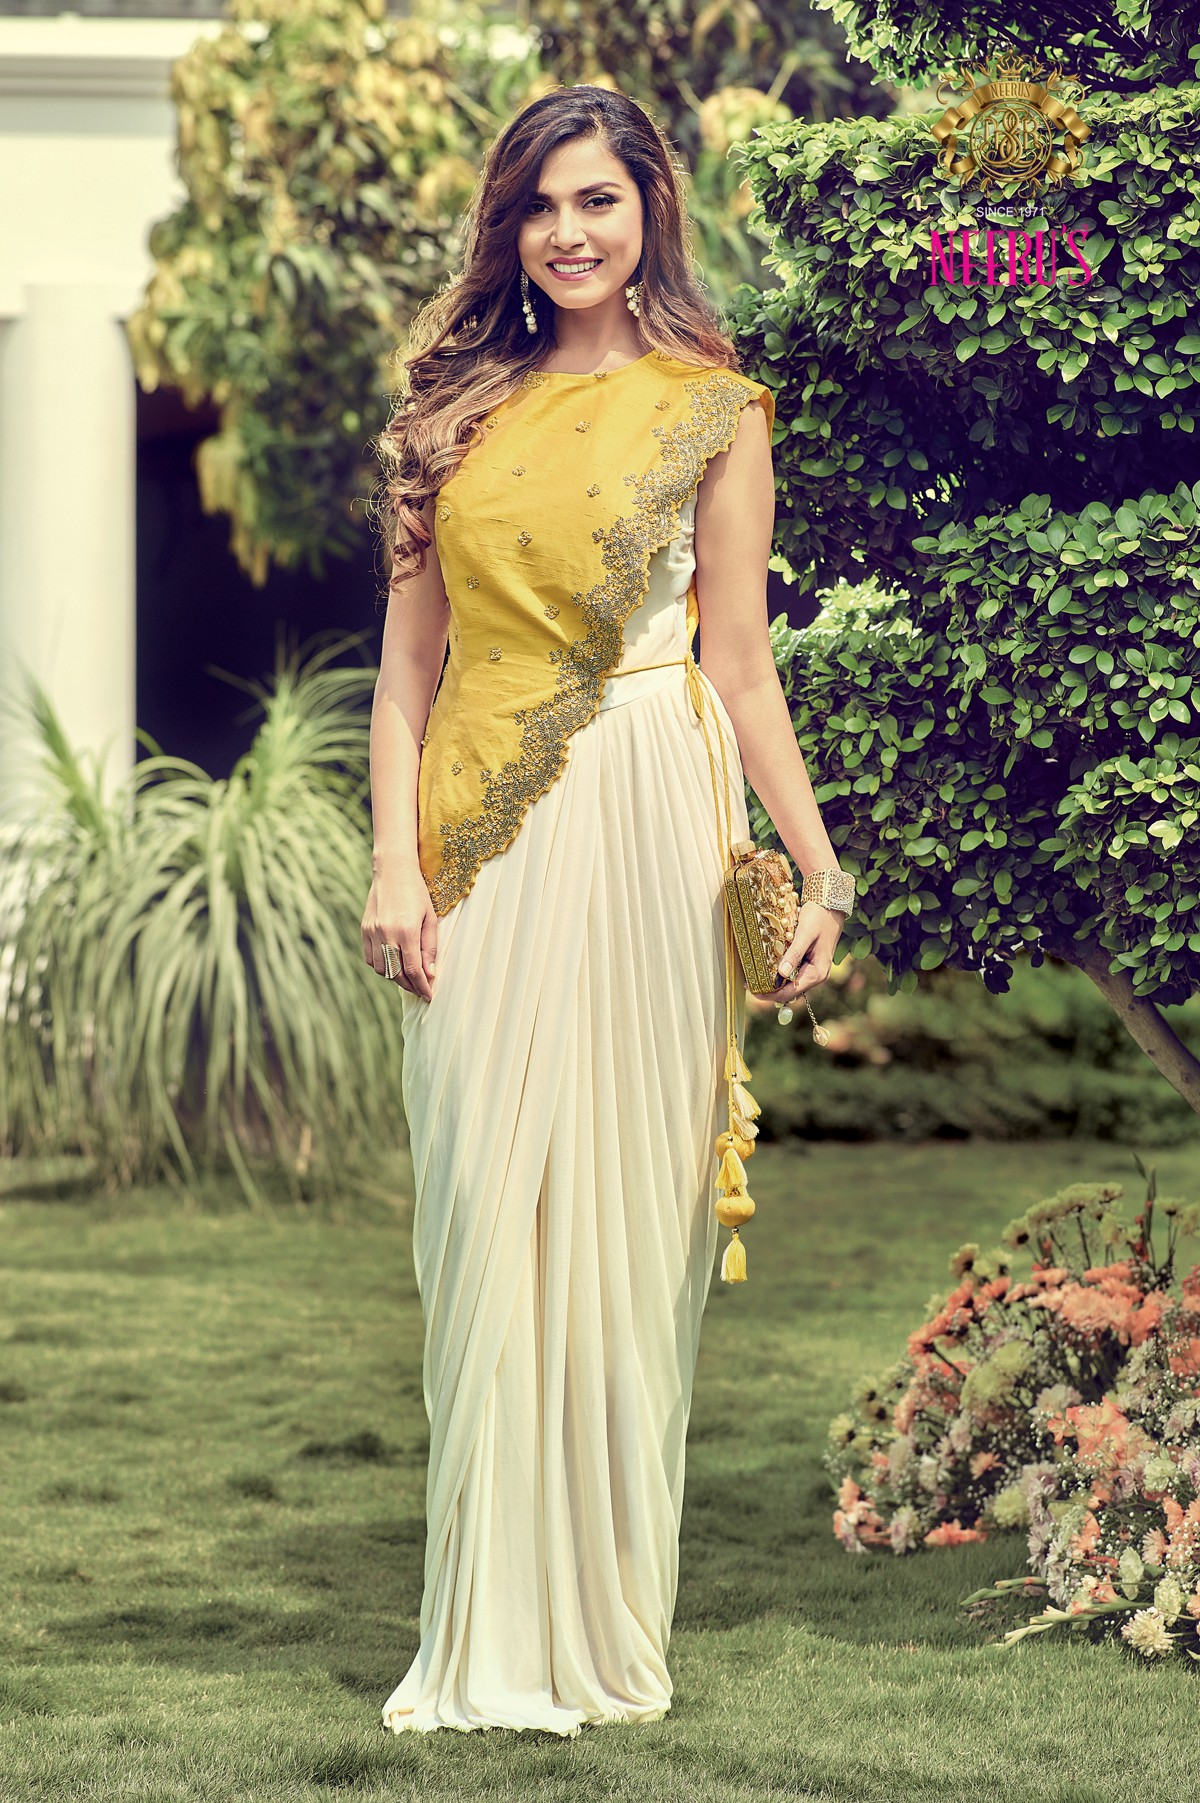 festive wear, festival outfit ideas, affordable festive wear, affordable festival outfit ideas, saree gown design ideas, yellow and ivory saree gown, neerus